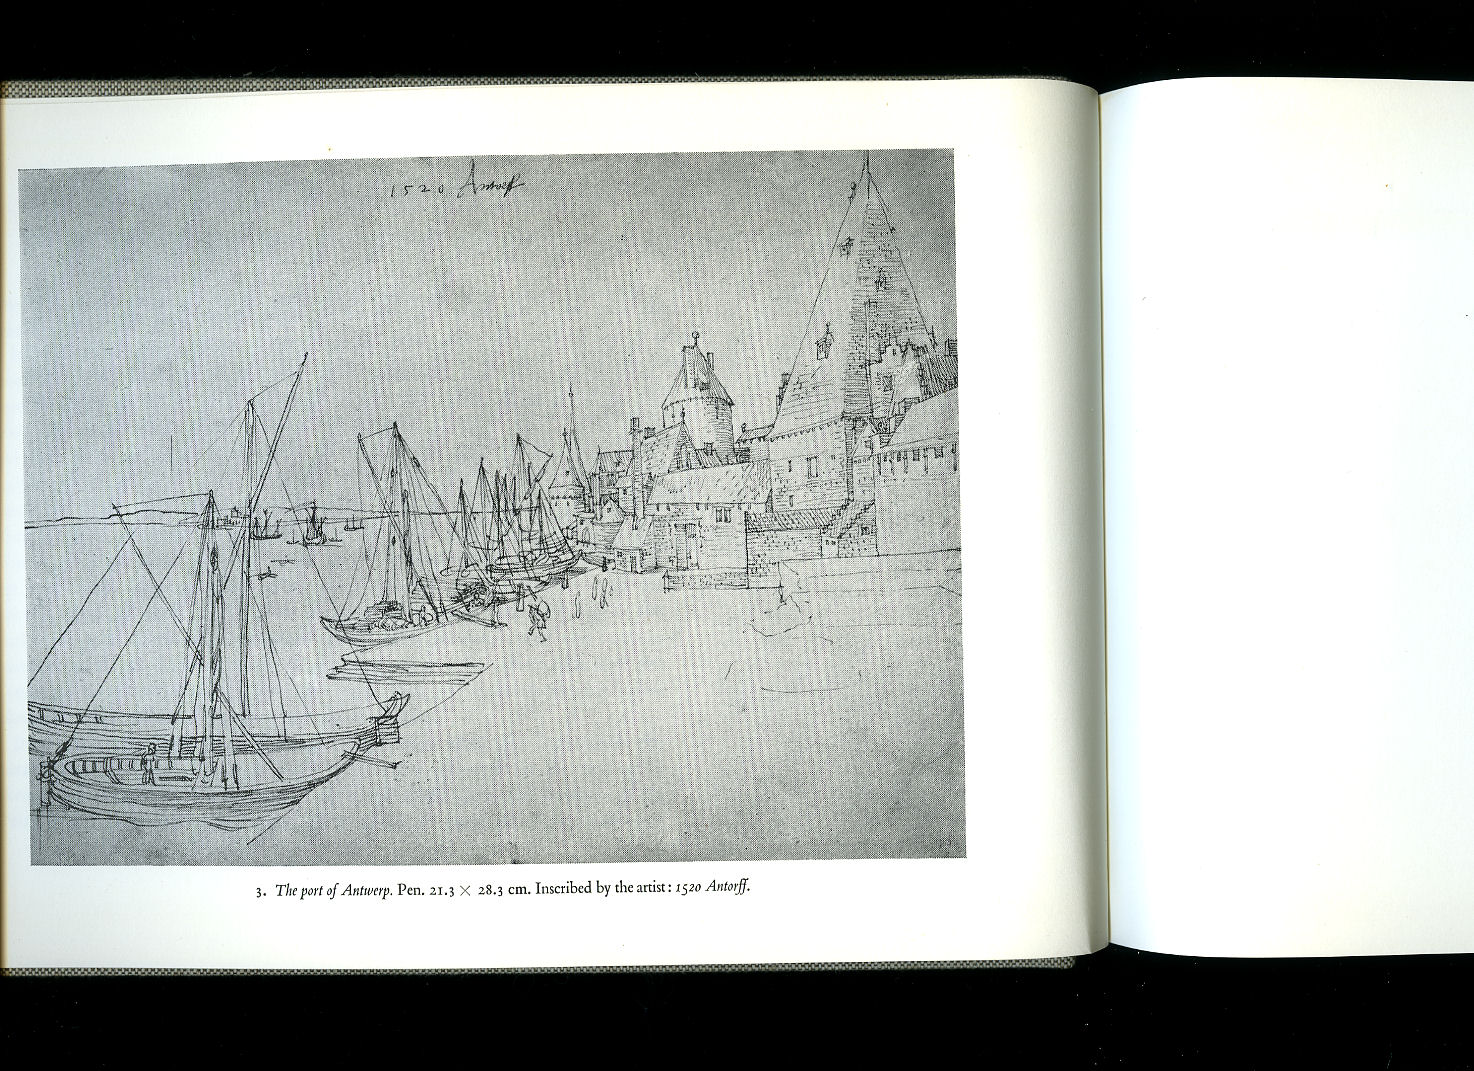 DÜRER, ALBRECHT [COMMENTARY BY PHILIP TROUTMAN] - Albrecht Dürer; Sketchbook of His Journey to the Netherlands 1520-21 with Extracts from His Diary